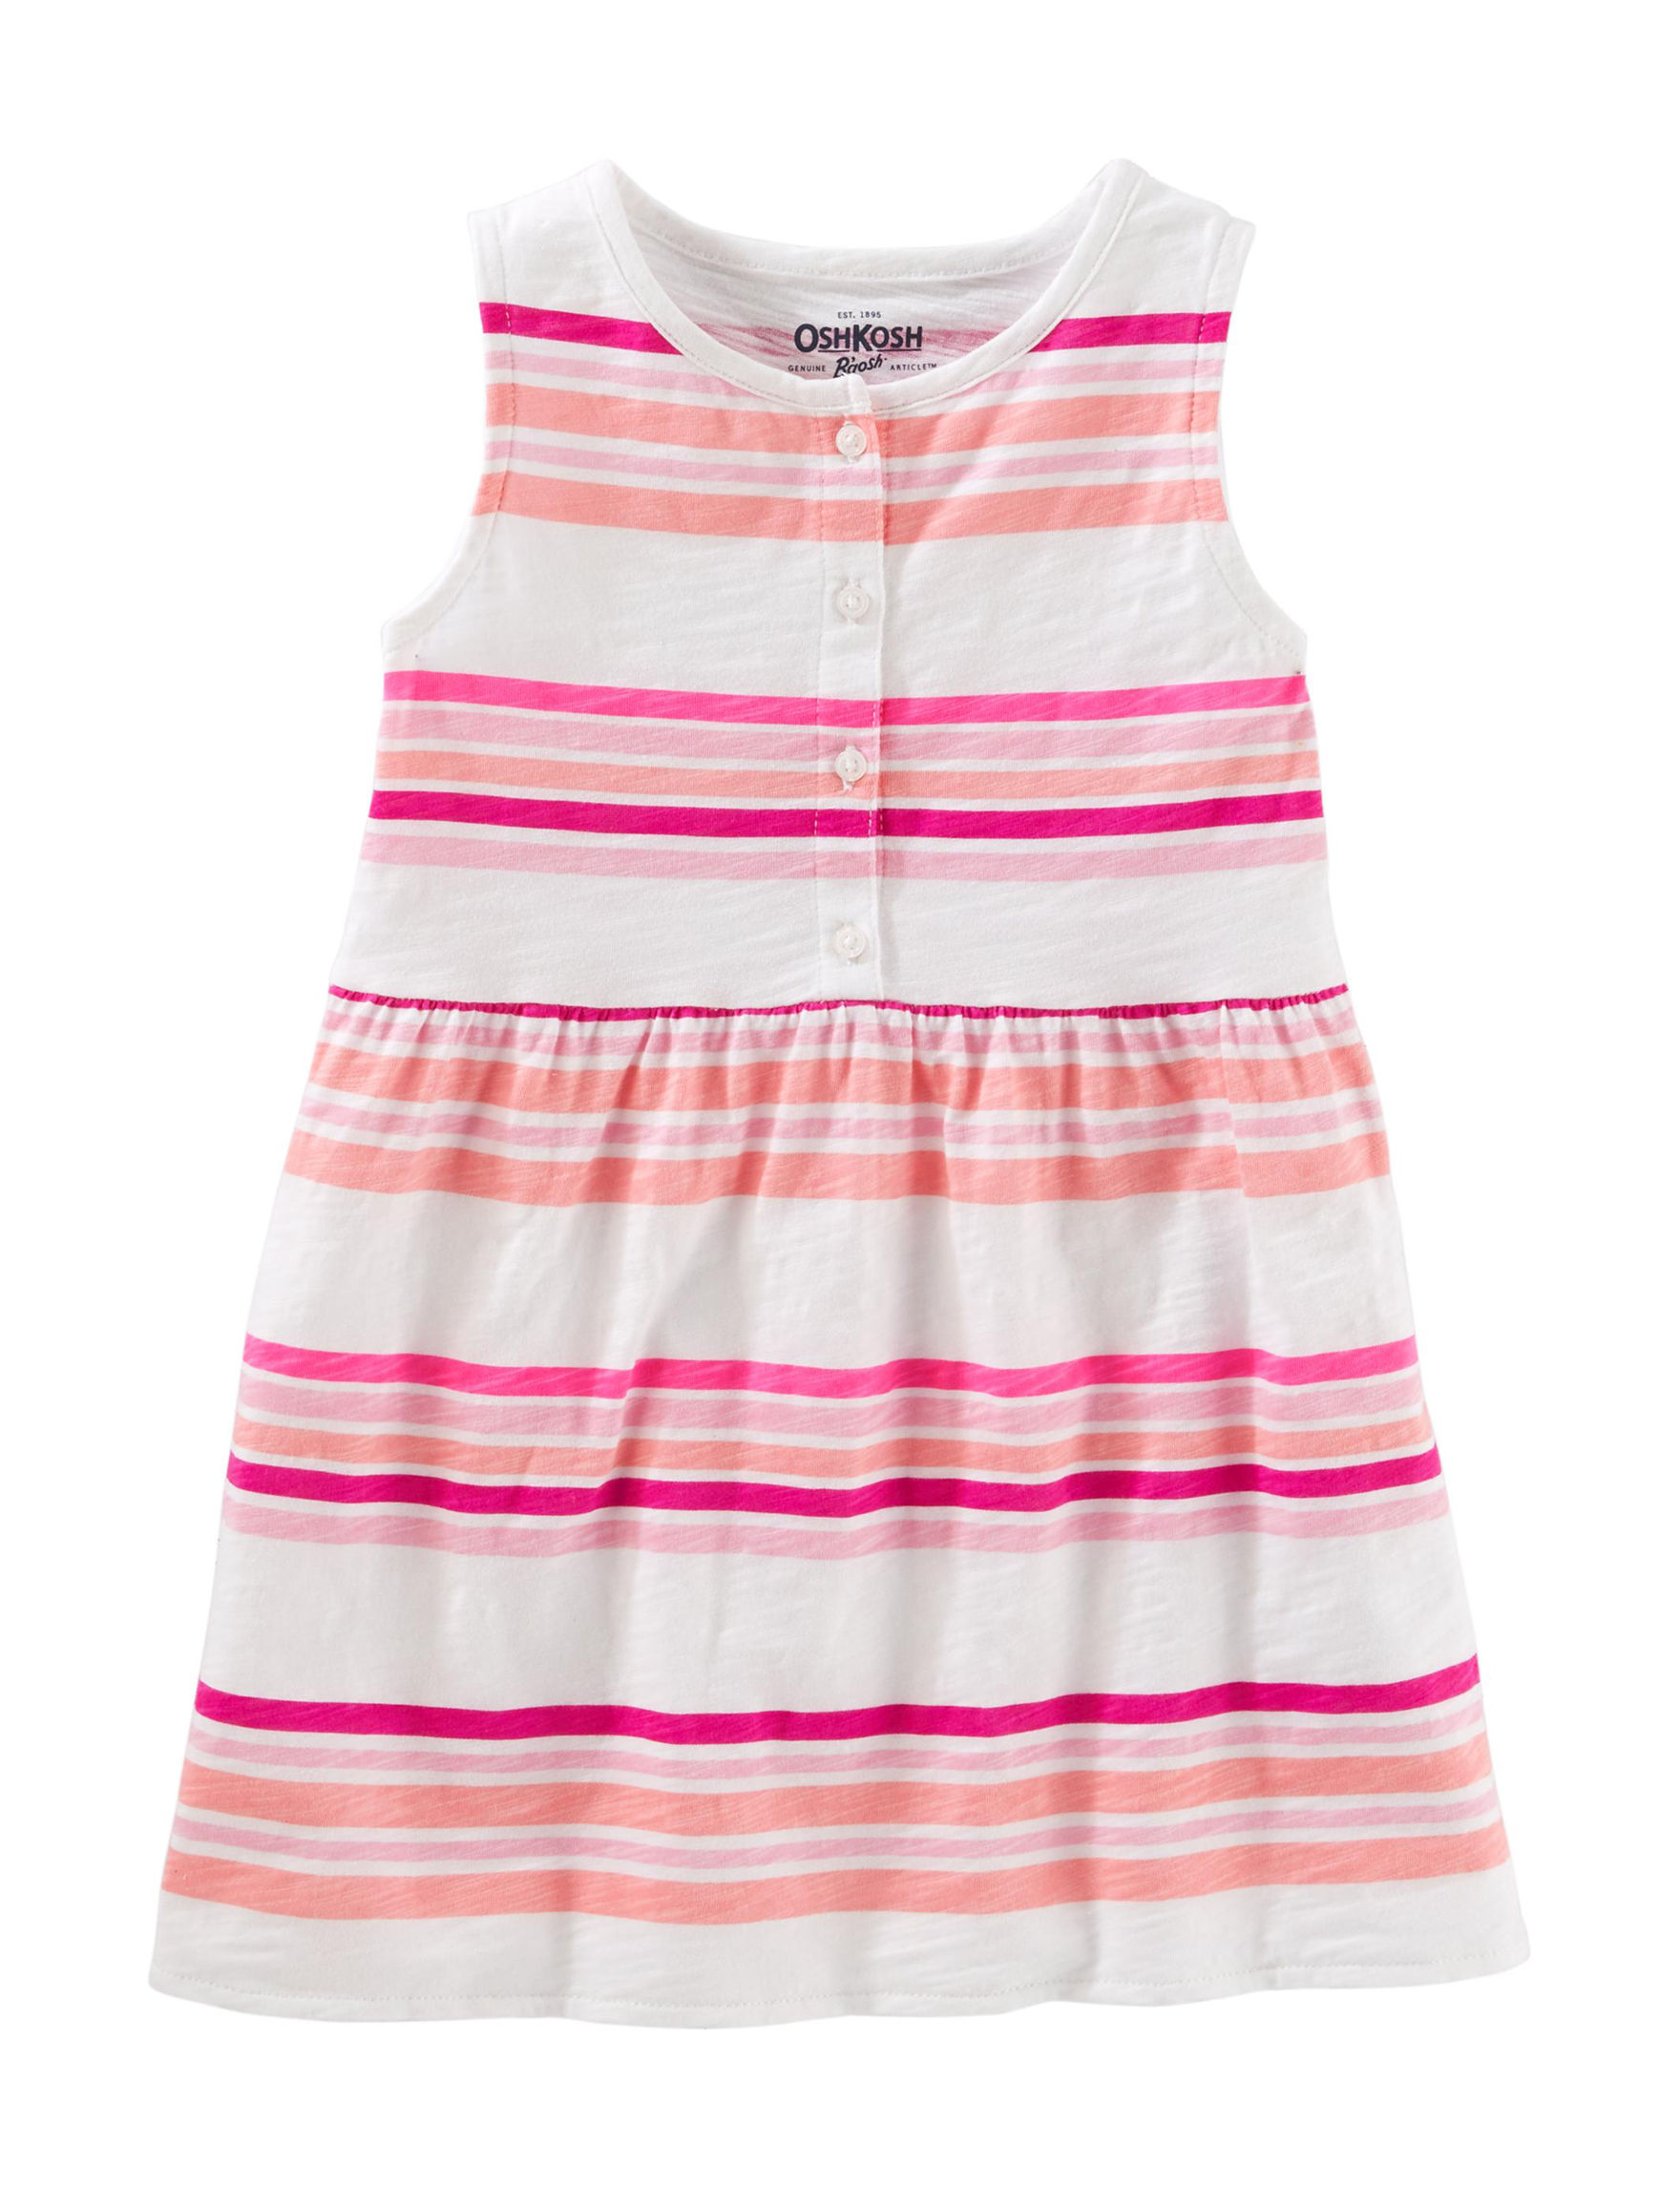 Oshkosh B'Gosh White Stripe Tees & Tanks